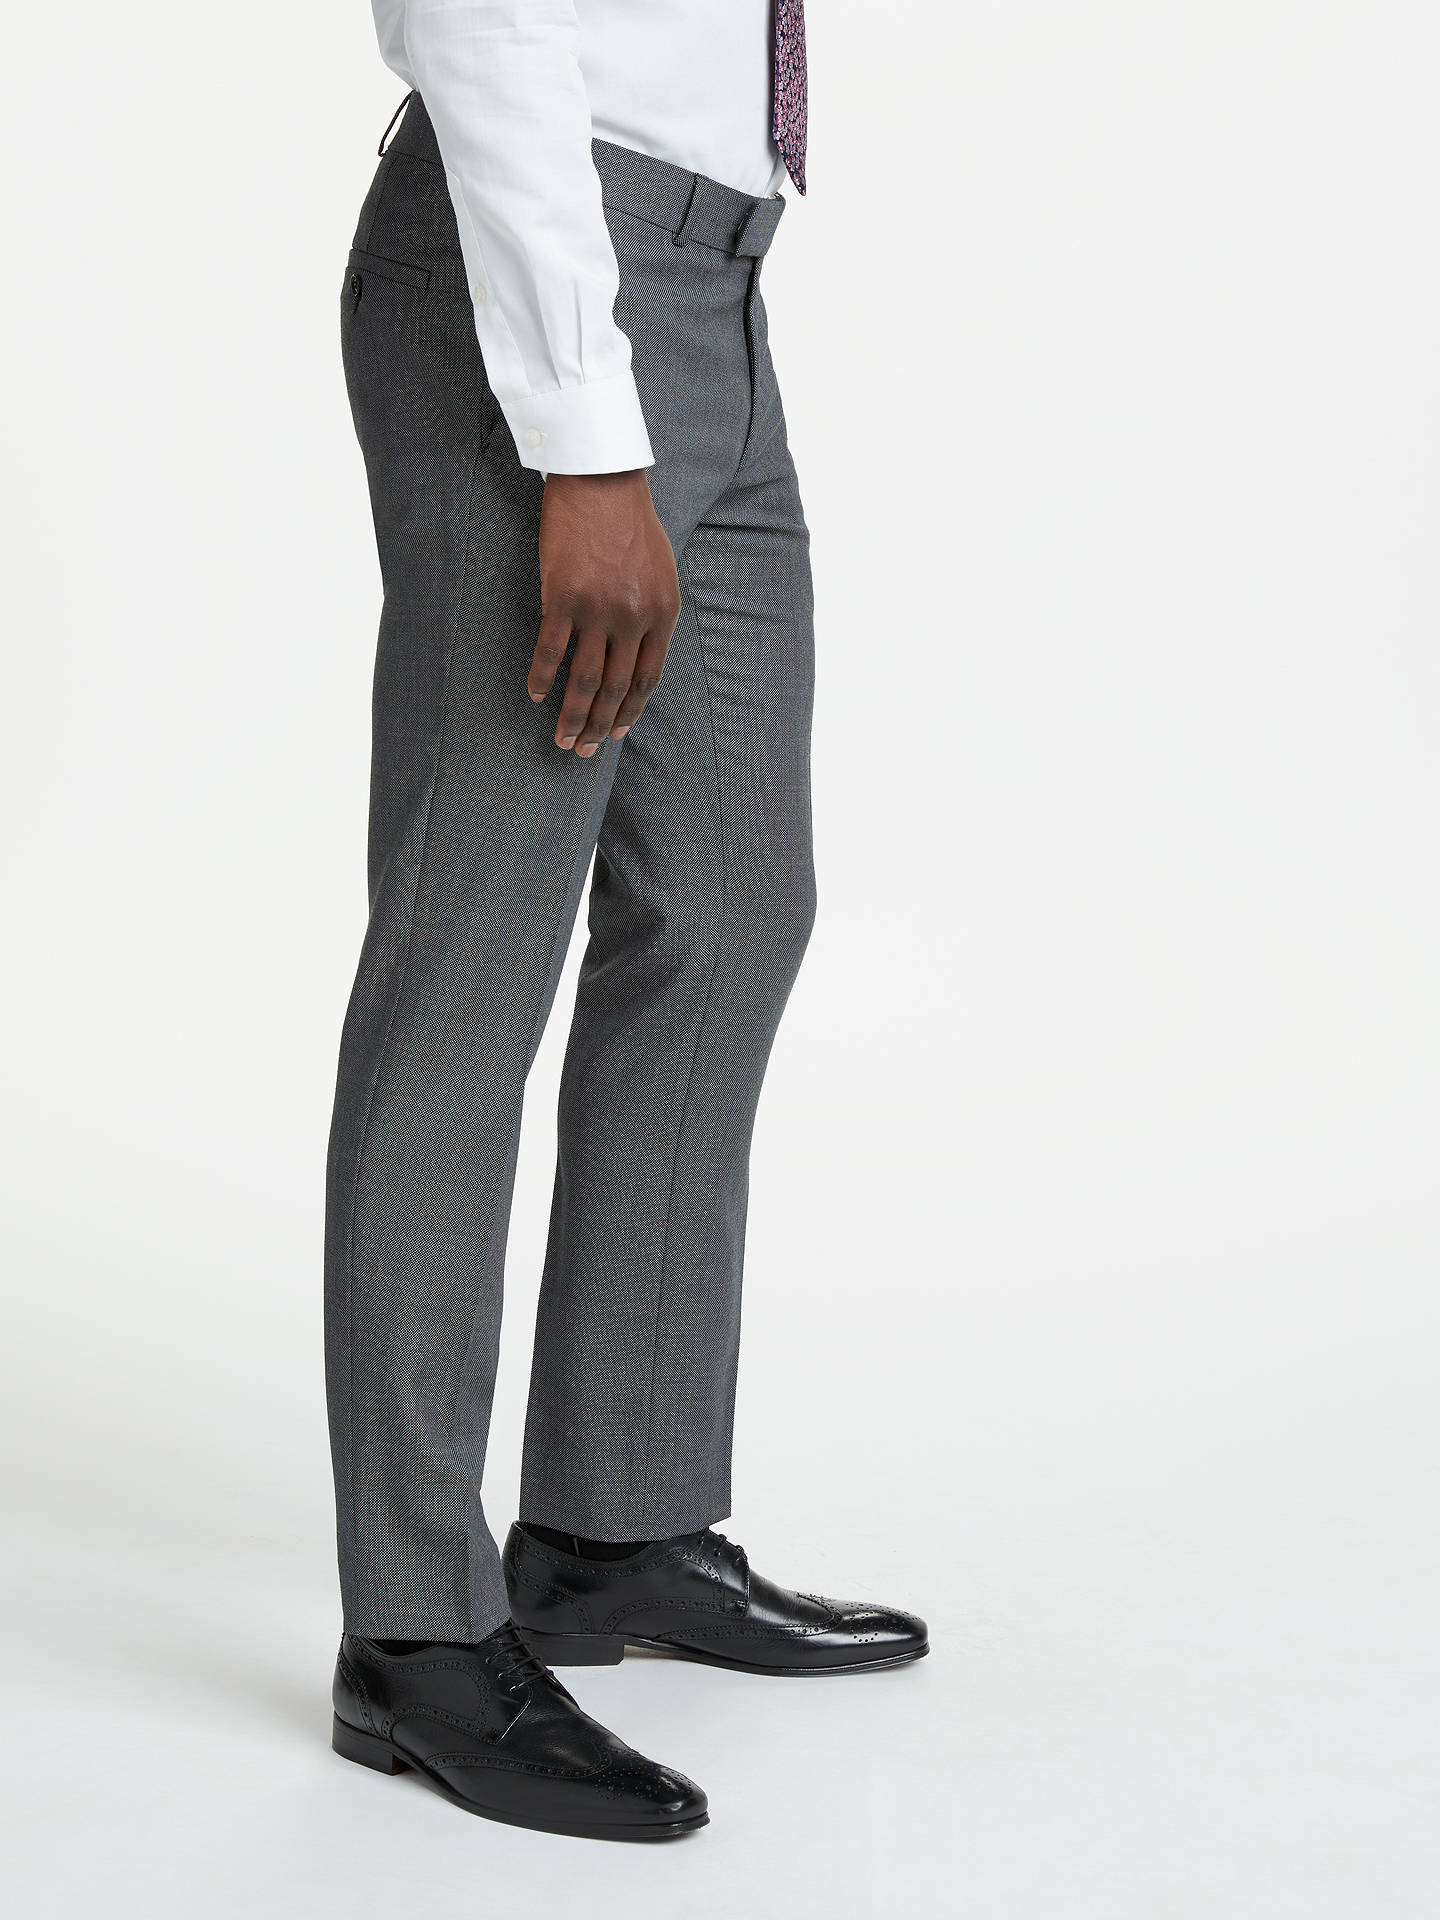 Buy Richard James Mayfair Birdseye Slim Suit Trousers, Charcoal, 32S Online at johnlewis.com